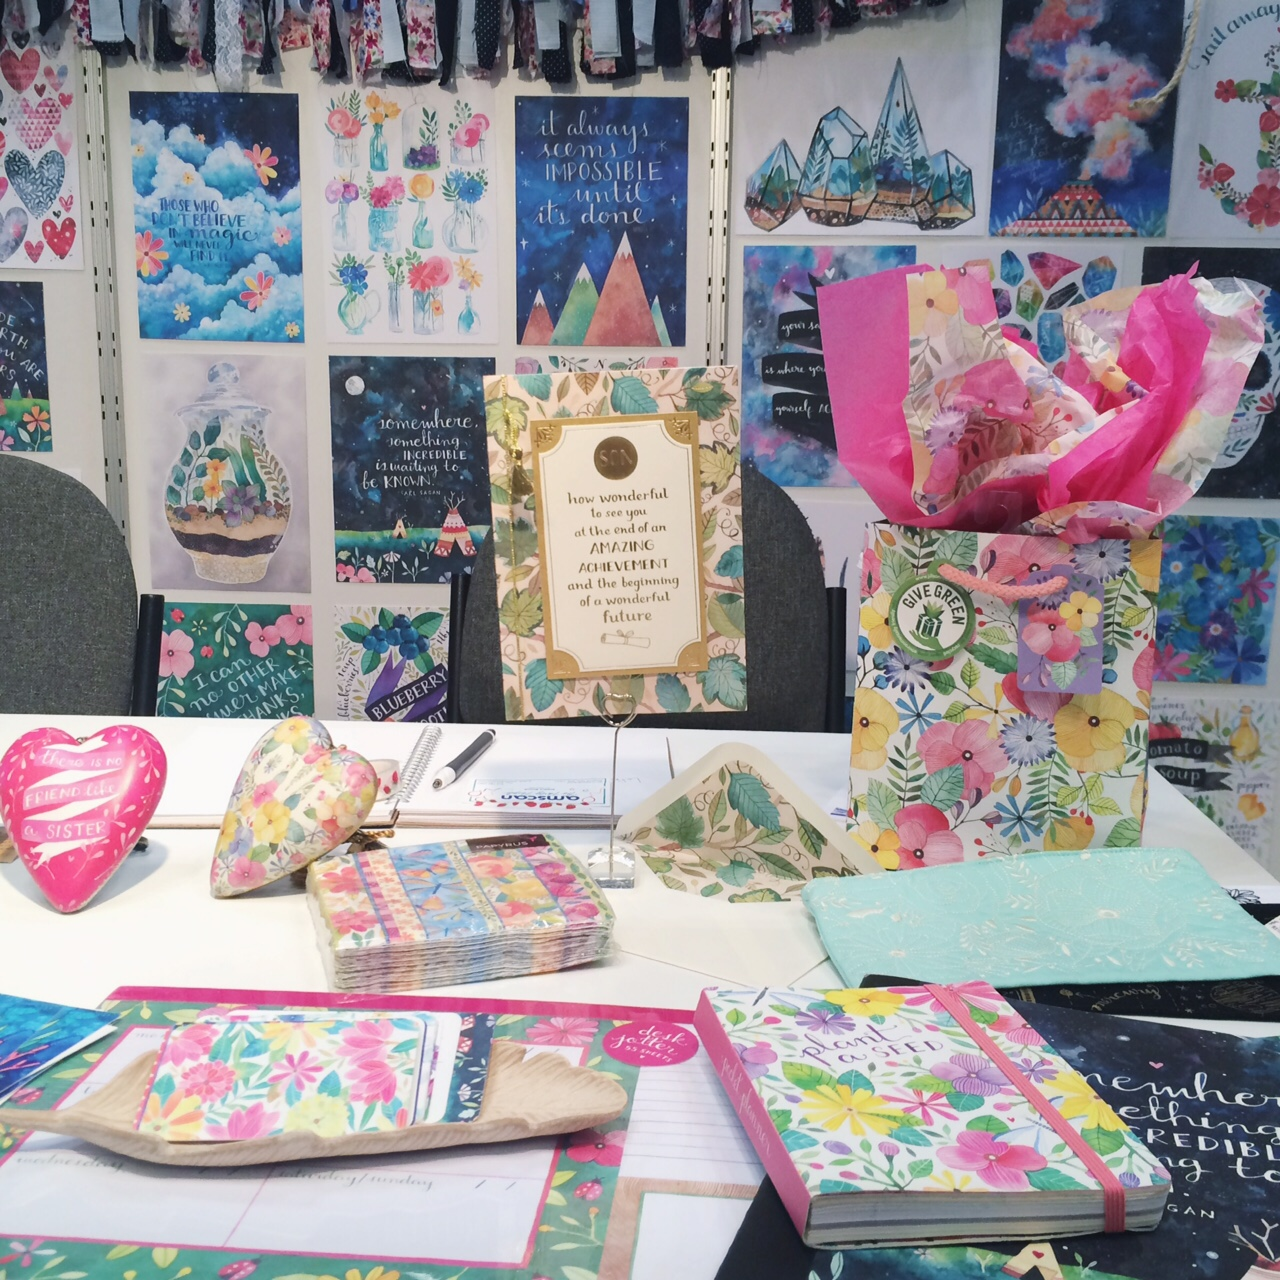 My desk with new products I showcase, usually from deals that came from last year's show.